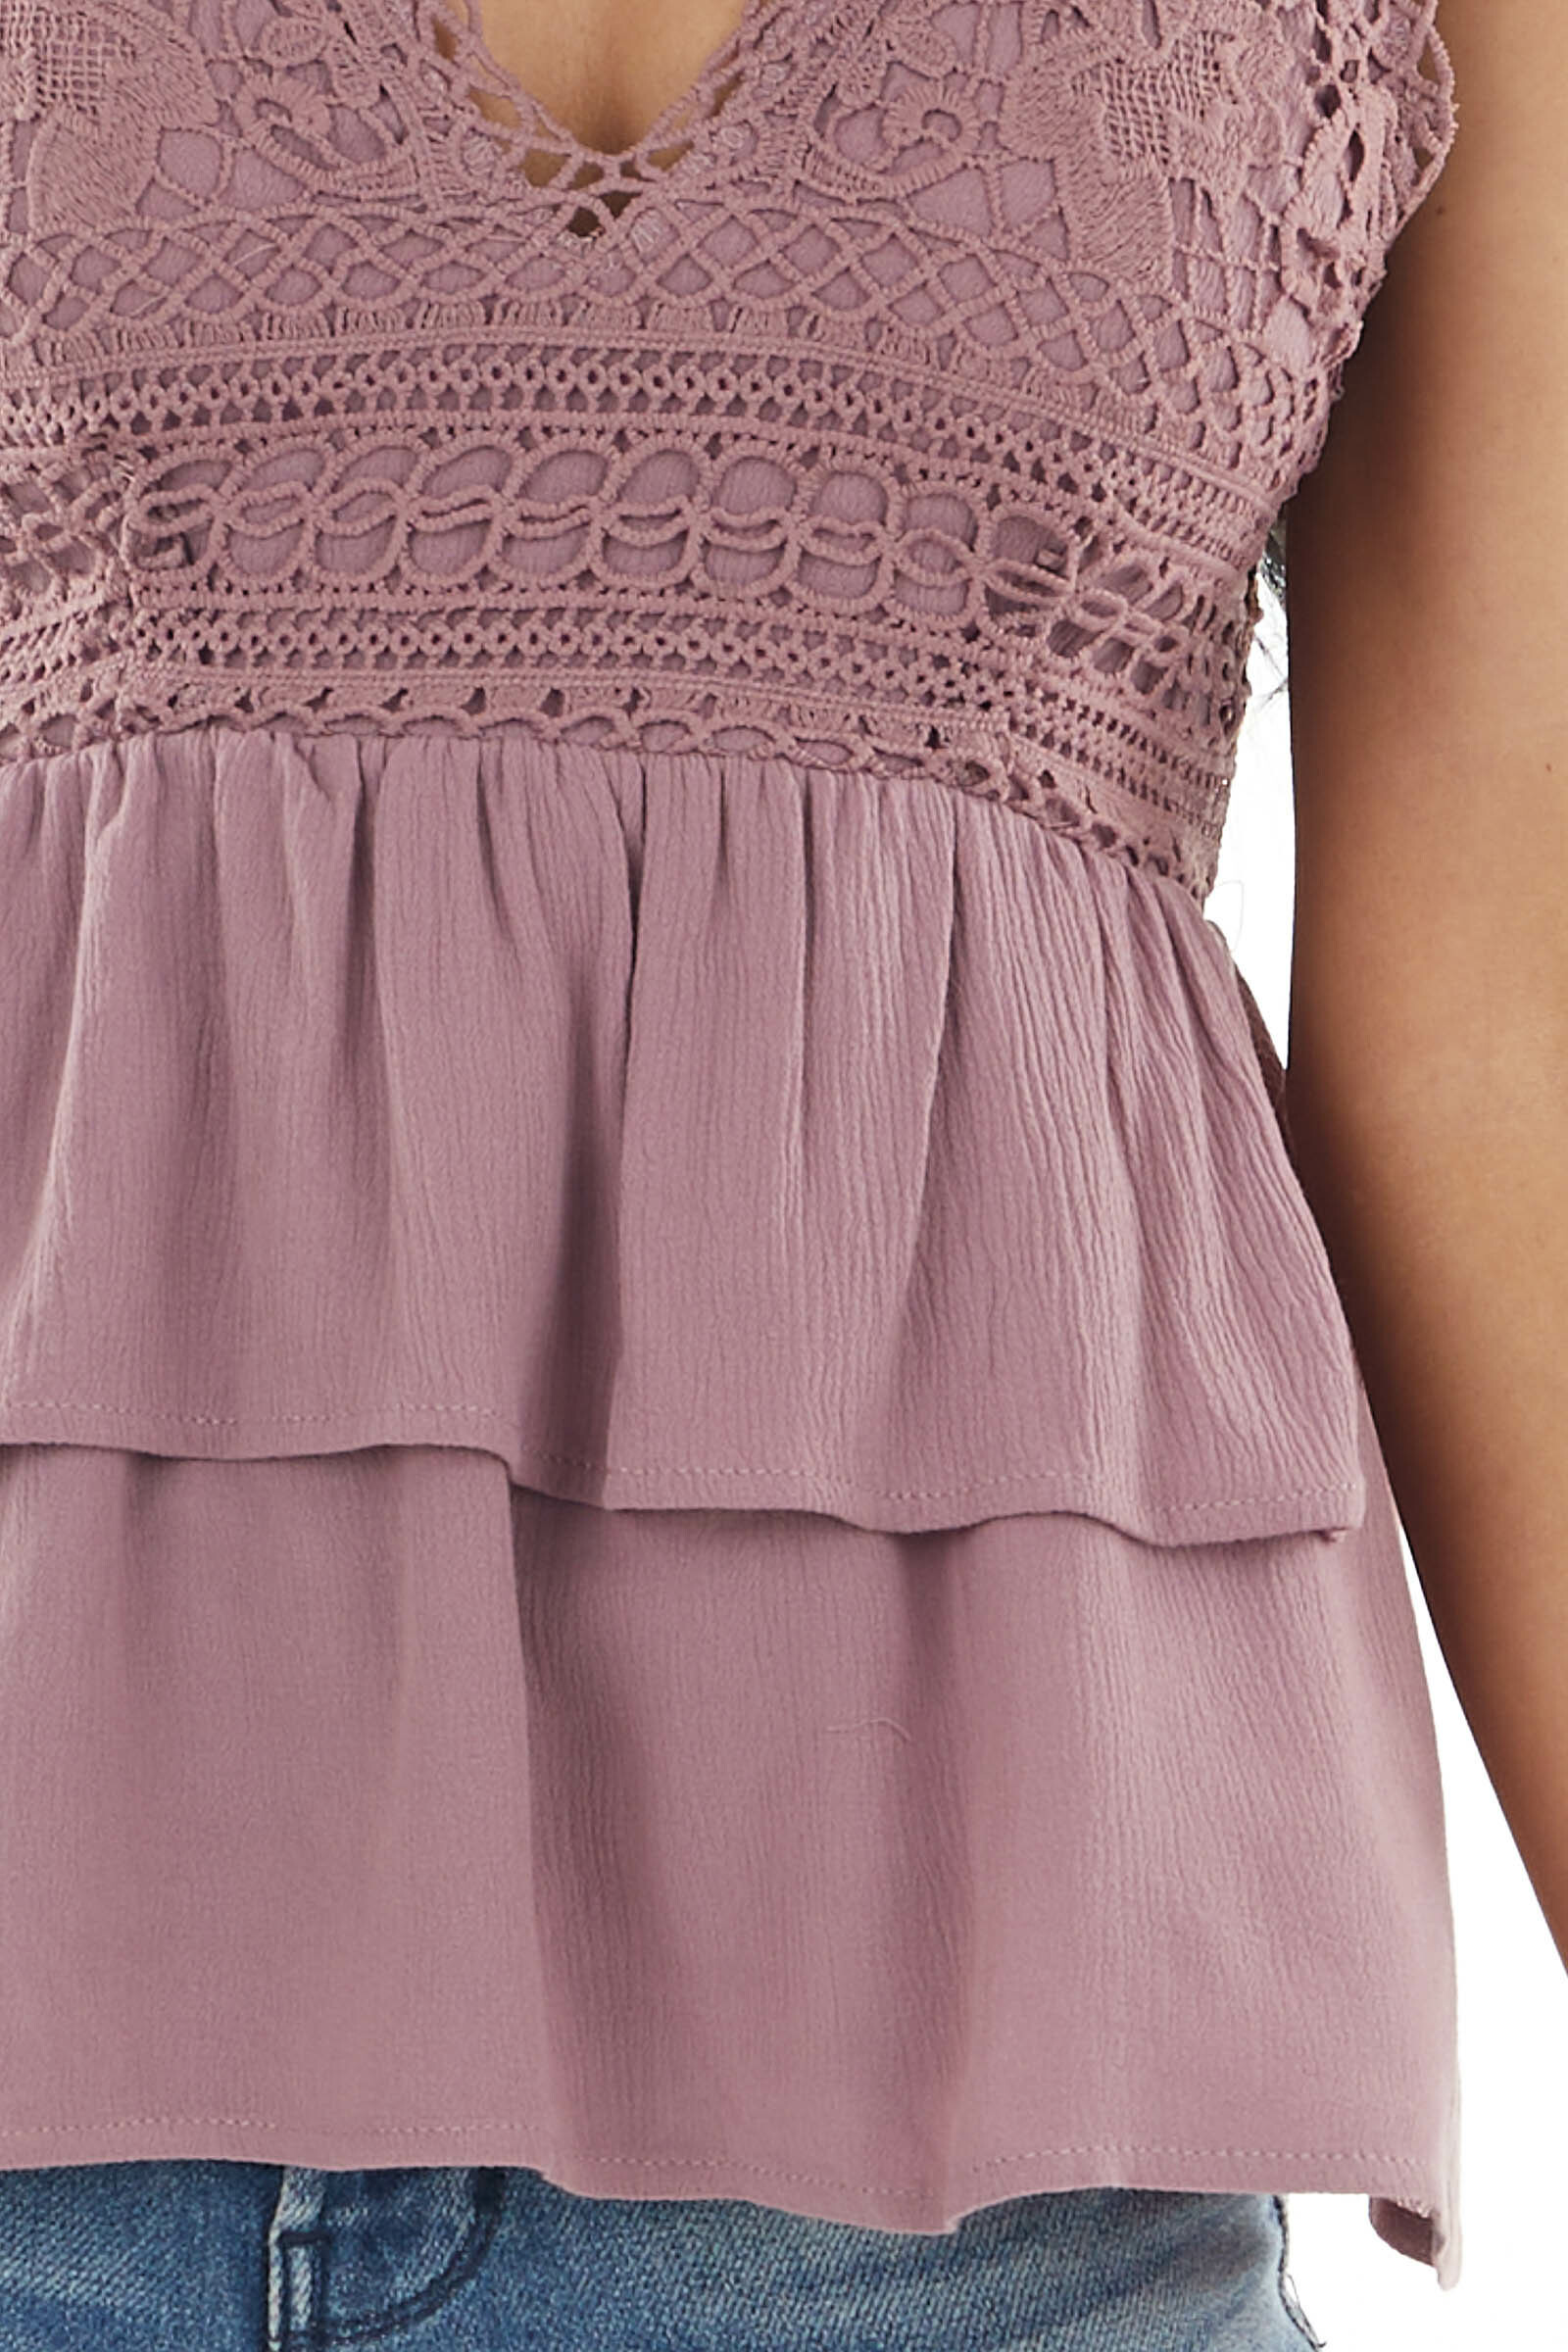 Dark Mauve Tiered Peplum Woven Tank Top with Crochet Lace